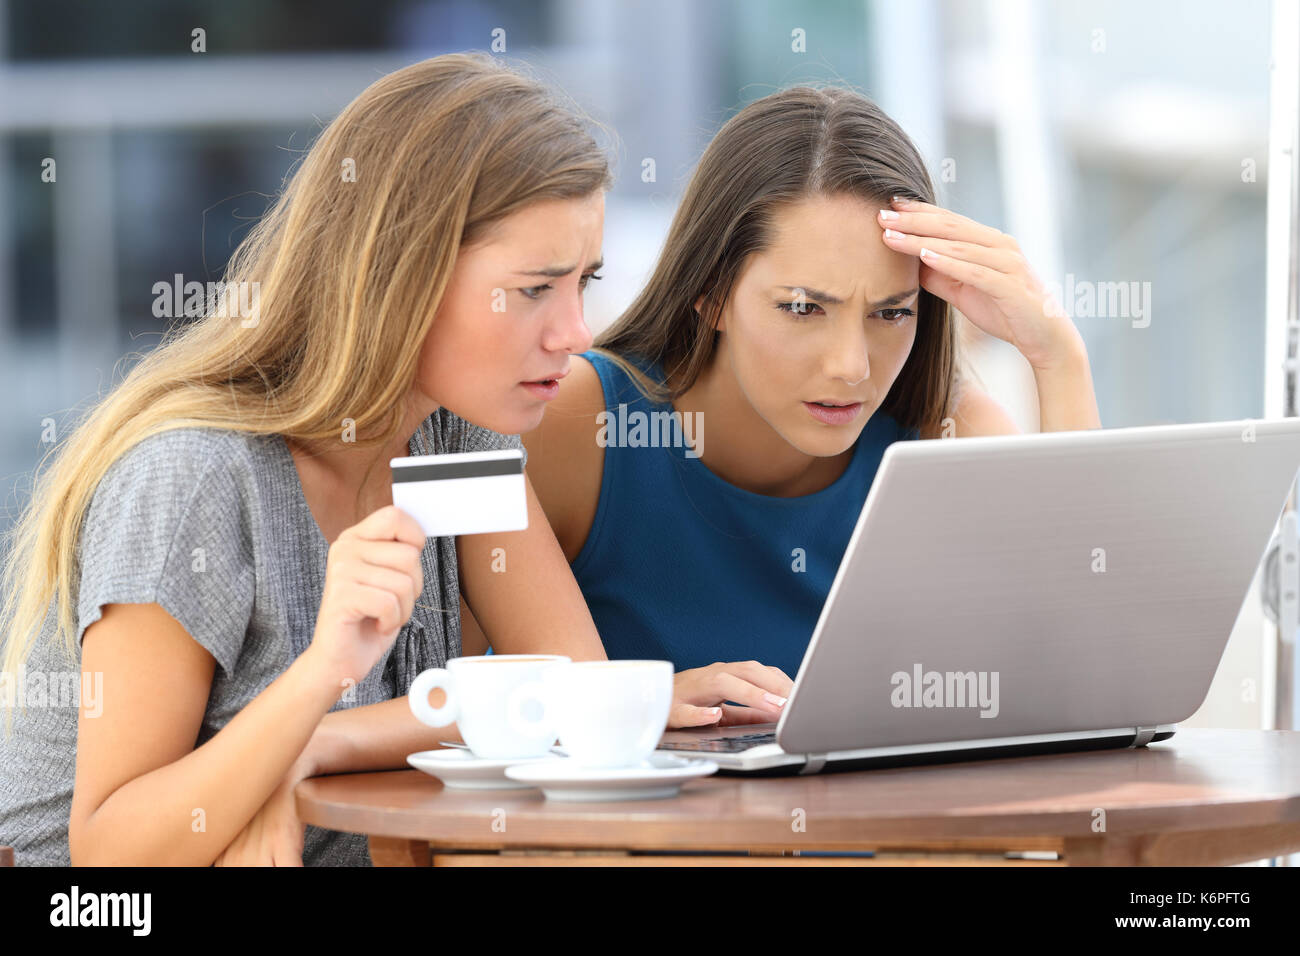 Two worried women having problems buying on line with a laptop and credit card sitting in a bar - Stock Image